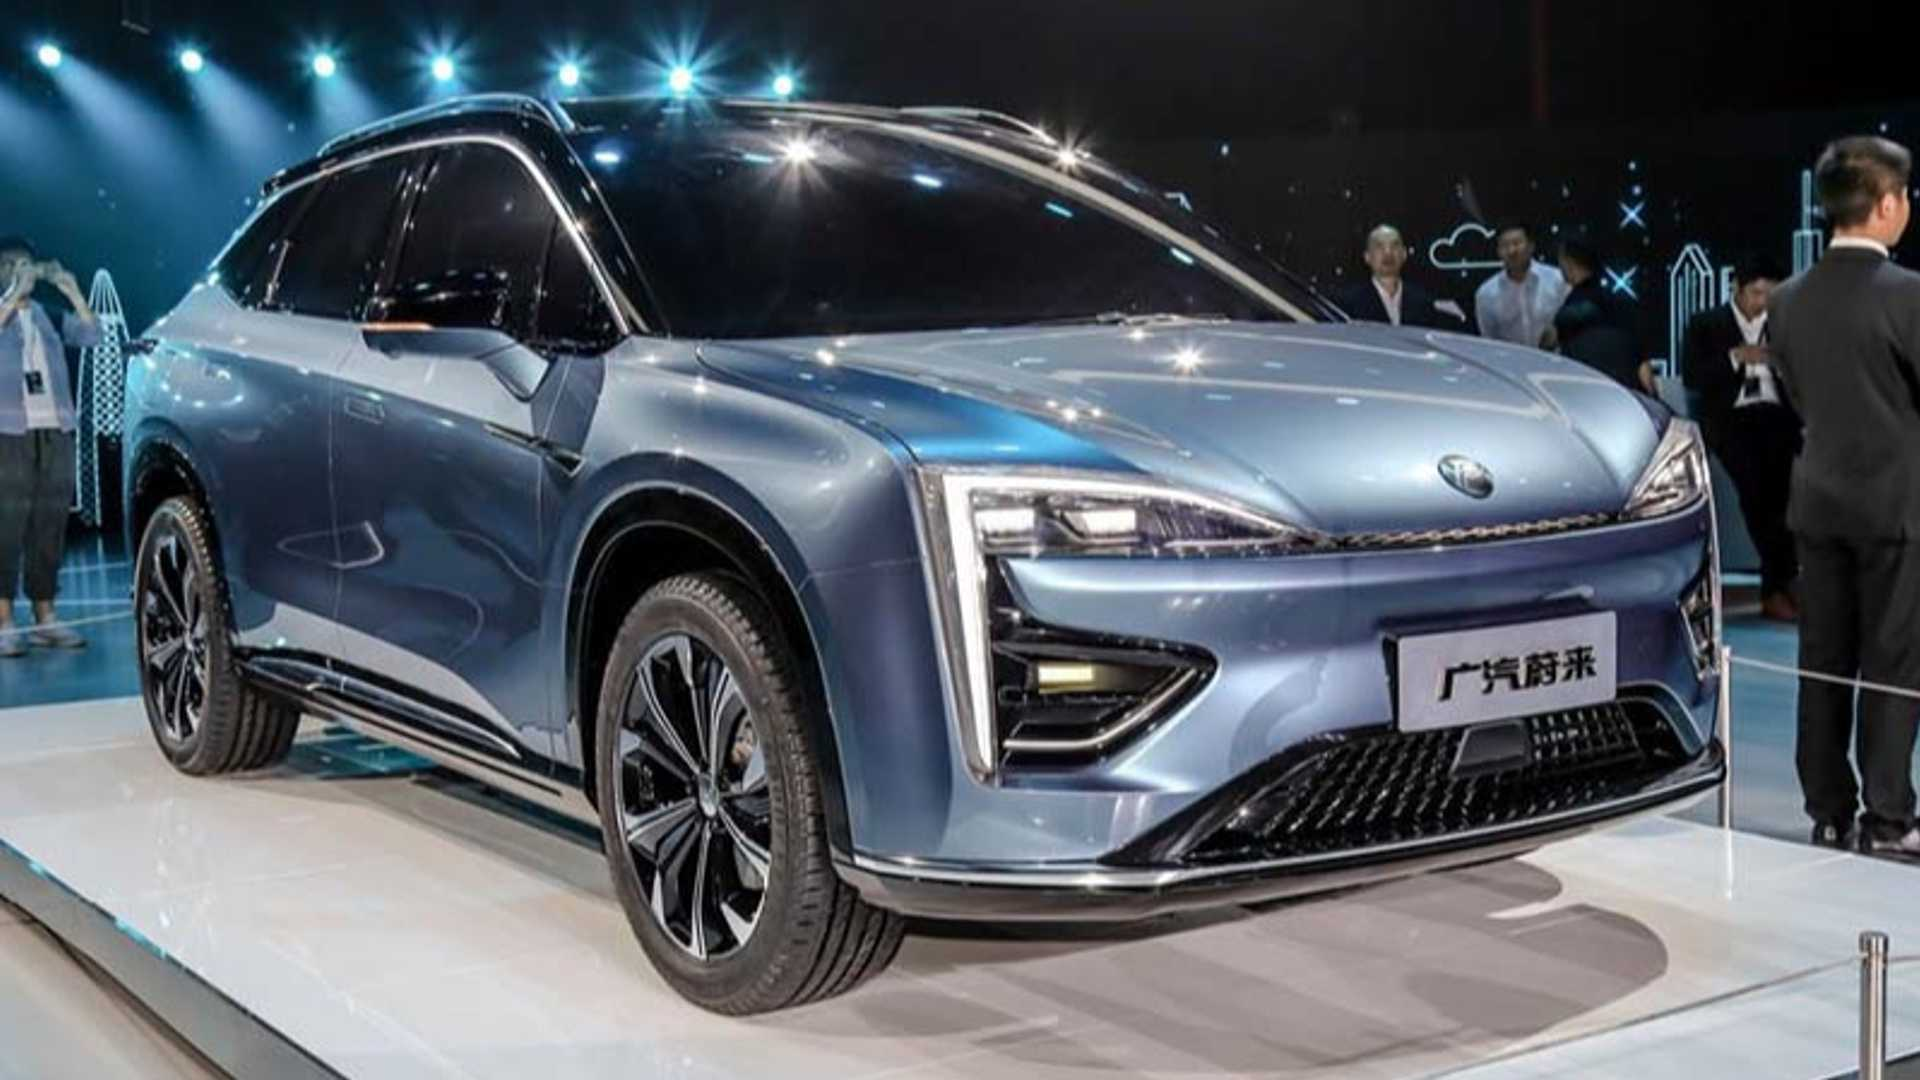 GAC-NIO Introduces Hycan Brand And Concept Electric SUV